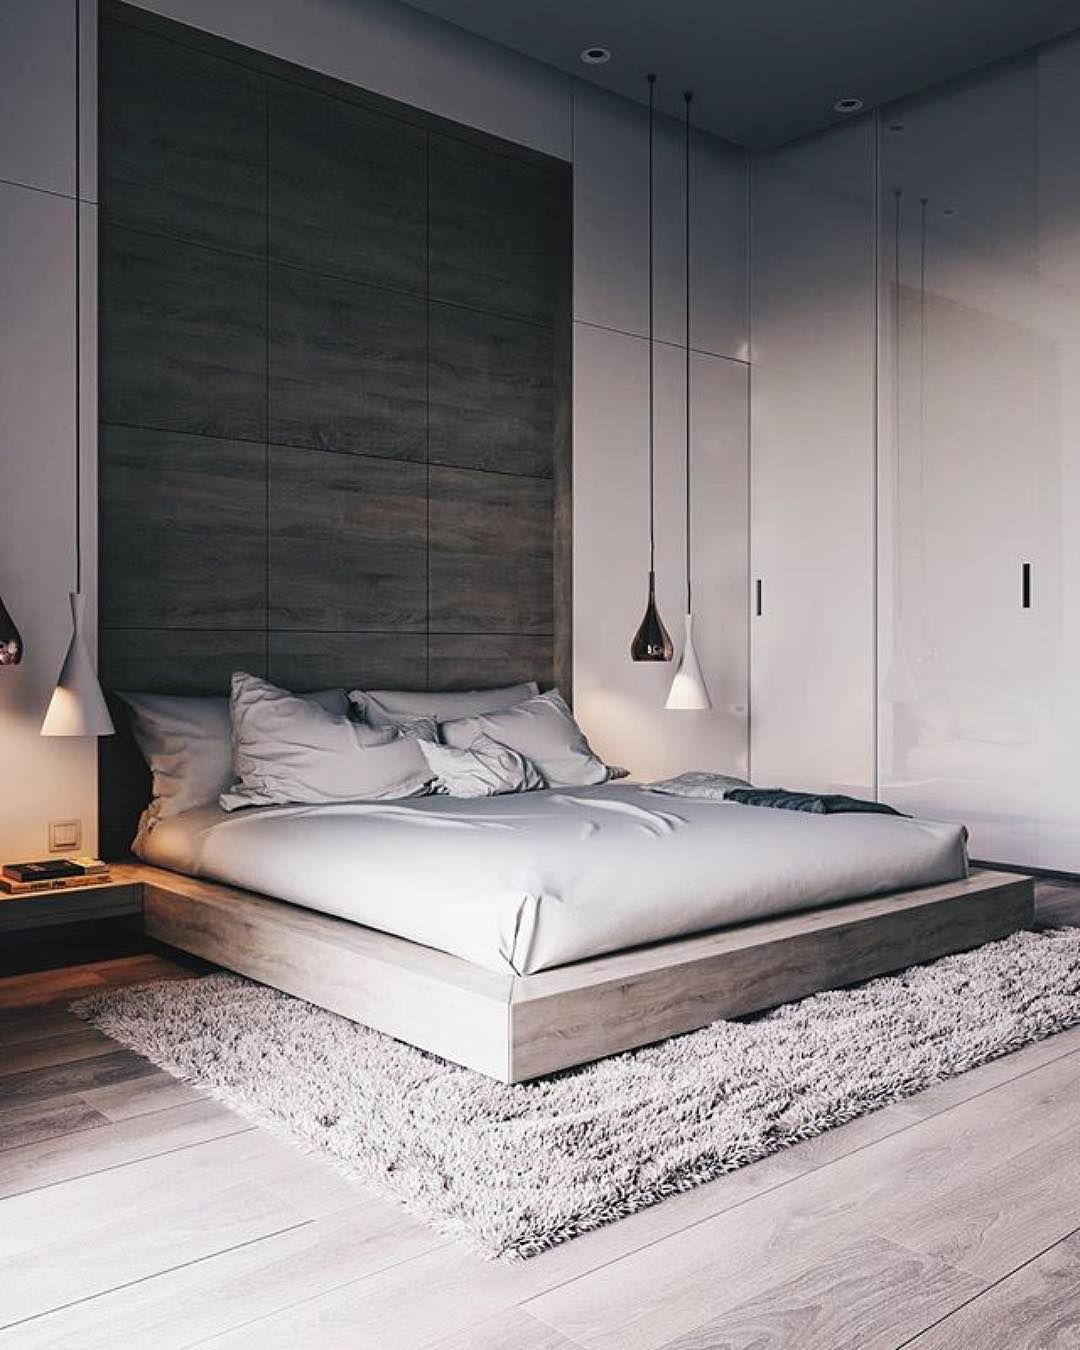 Zen Interior Design Bedroom Rainbow Bedroom Wallpaper Recessed Lighting Bedroom Placement Bedroom Colours With Oak Furniture: Pin By Chloe Coll On €� Homes €�